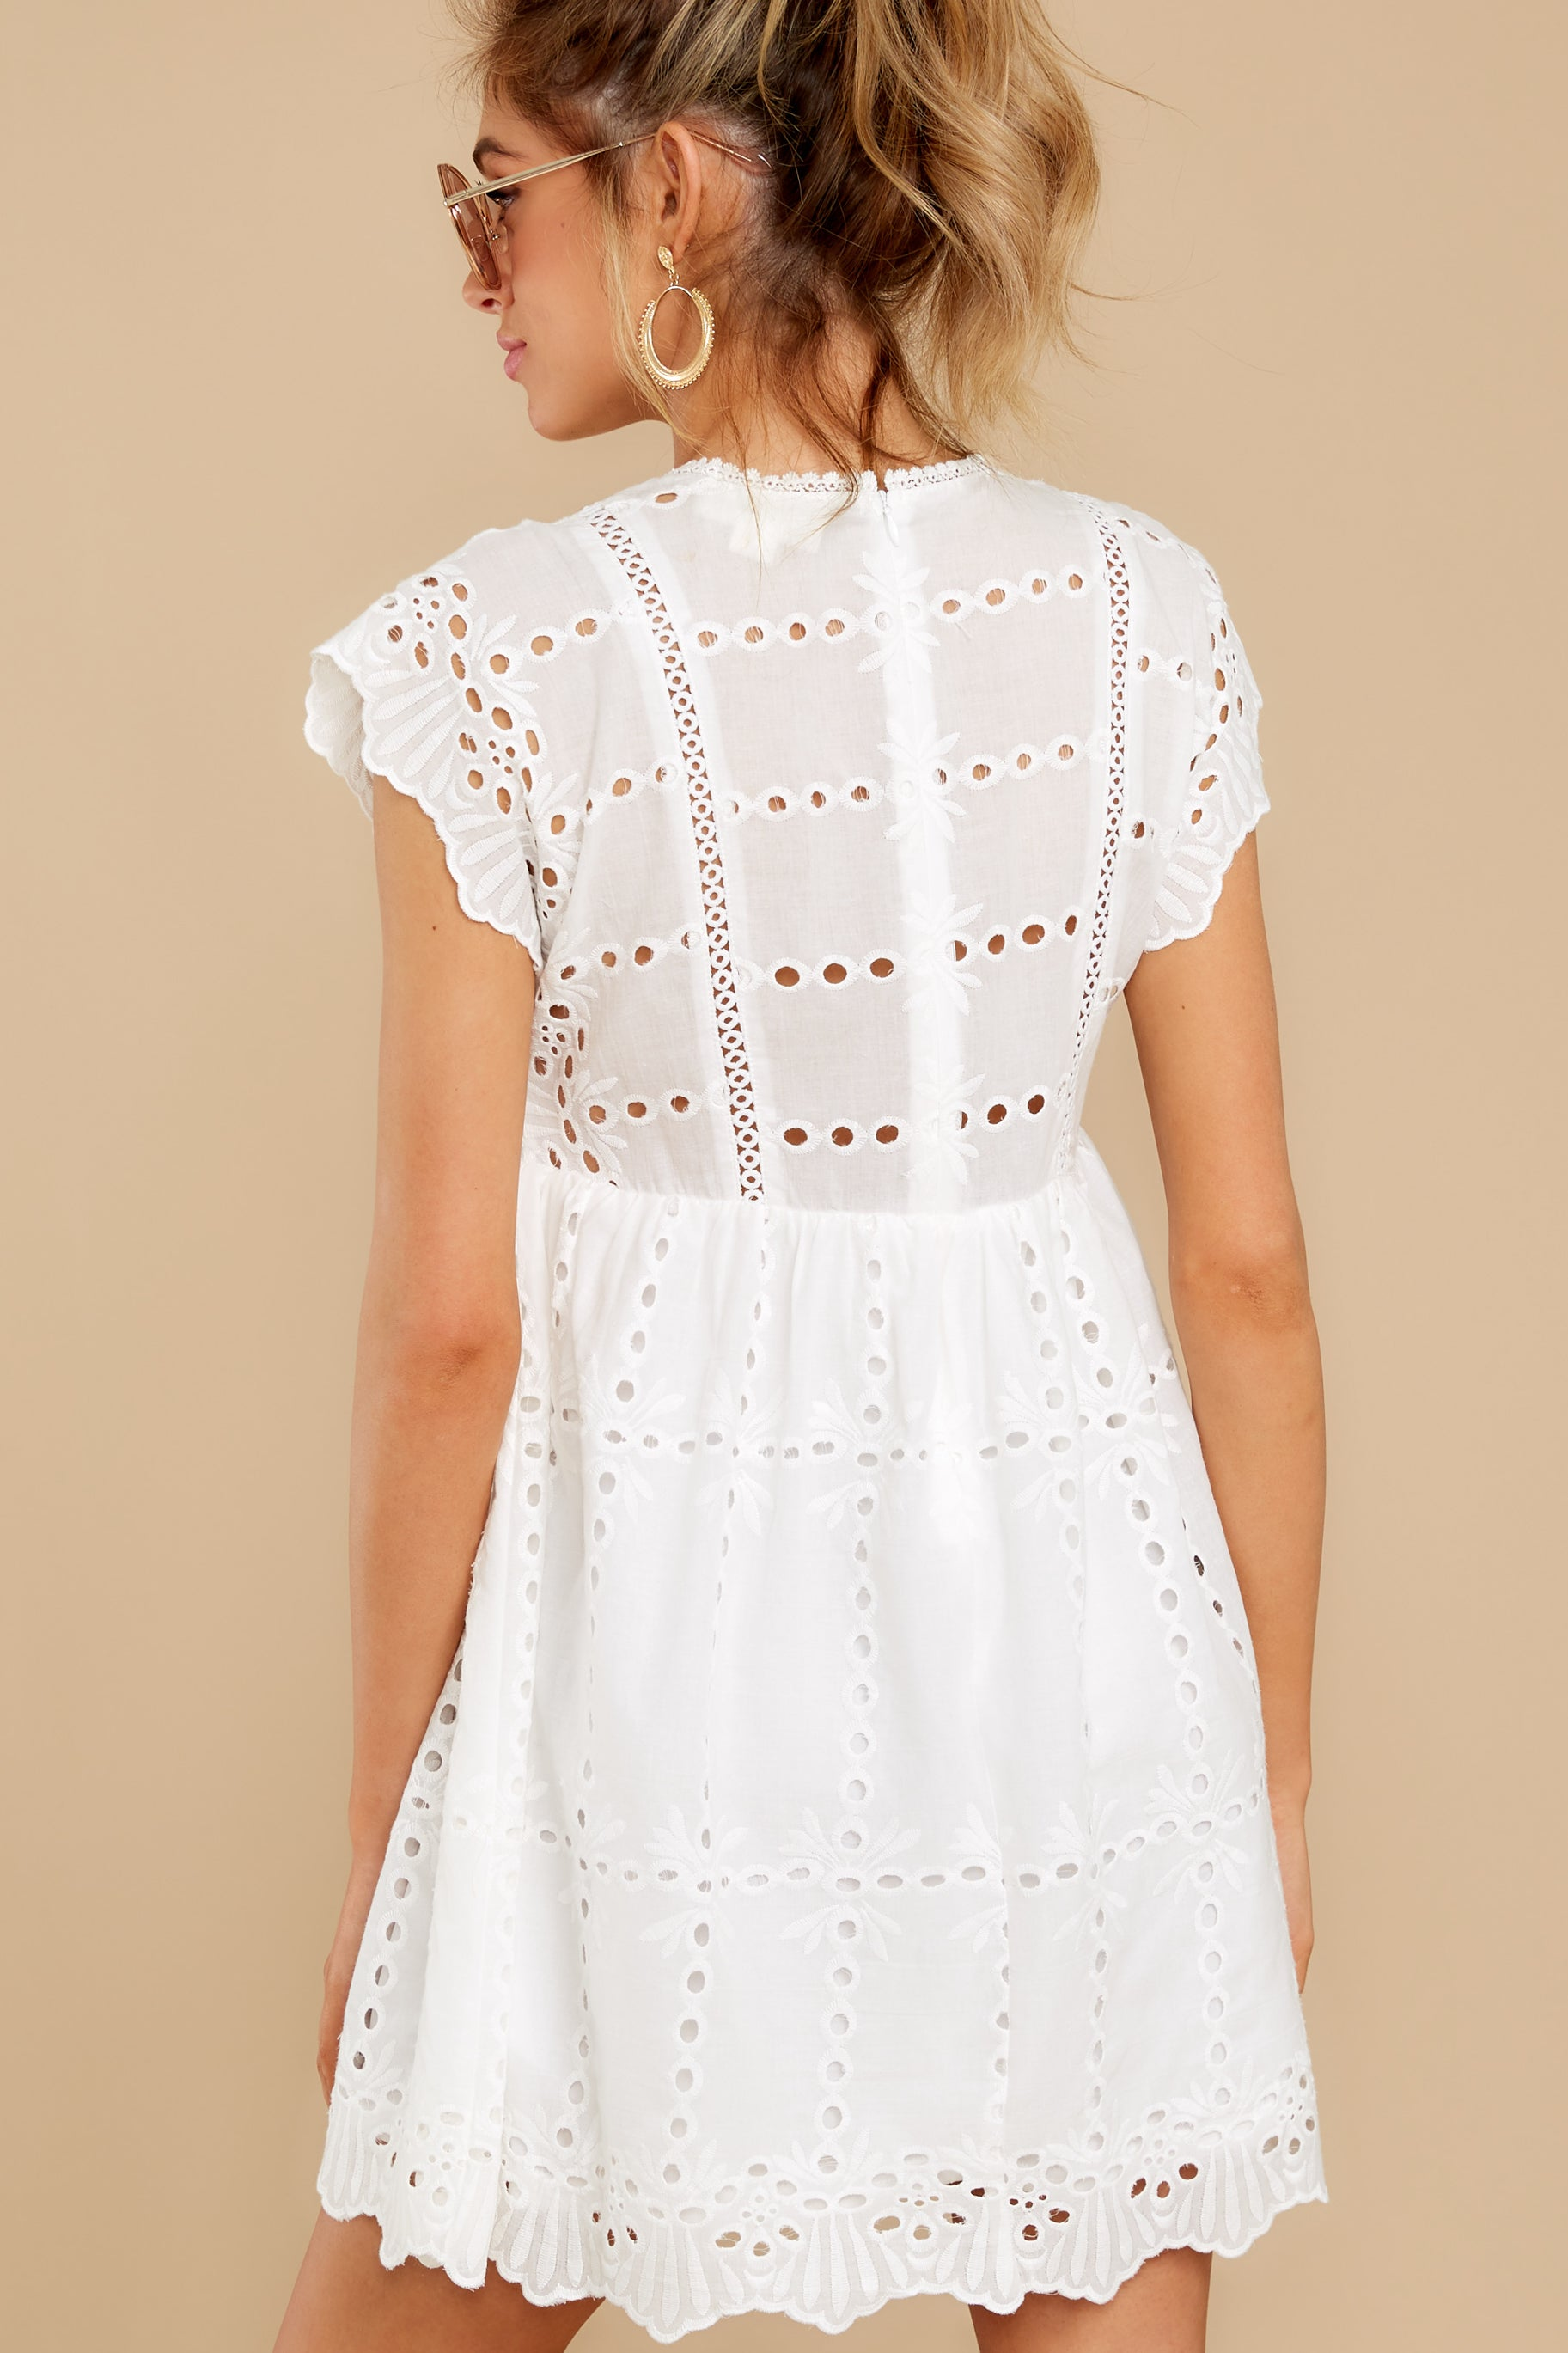 8 Better To Be Sweet White Eyelet Dress at reddress.com